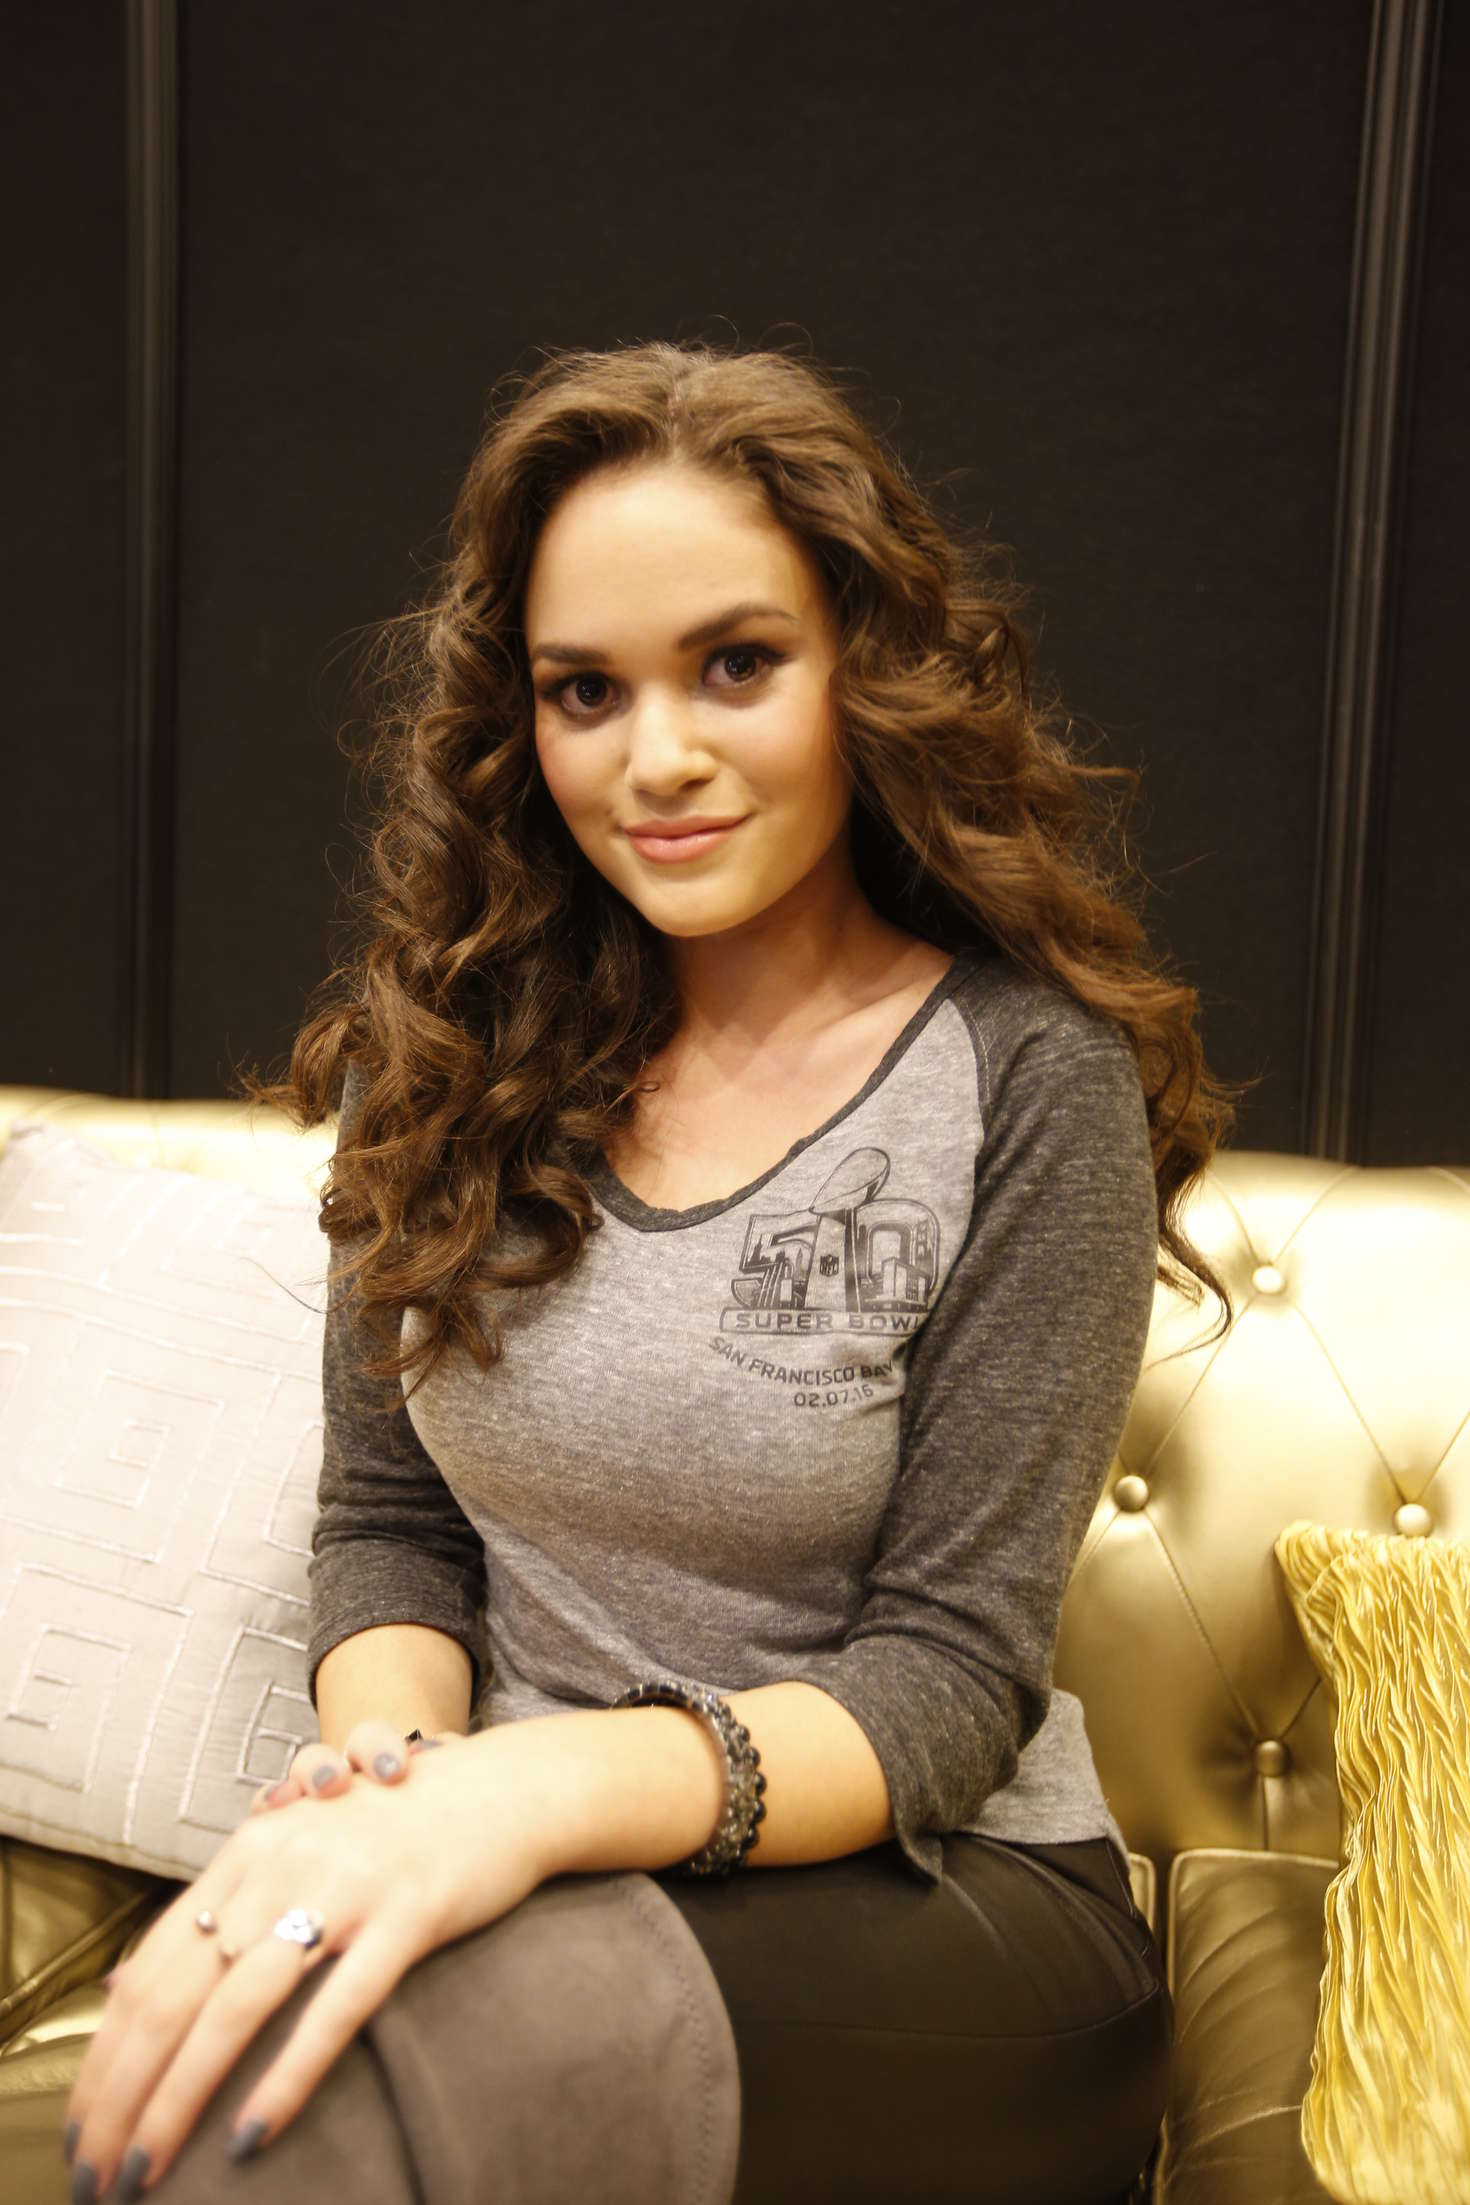 Madison Pettis NFL Shop Juniors Event in San Francisco